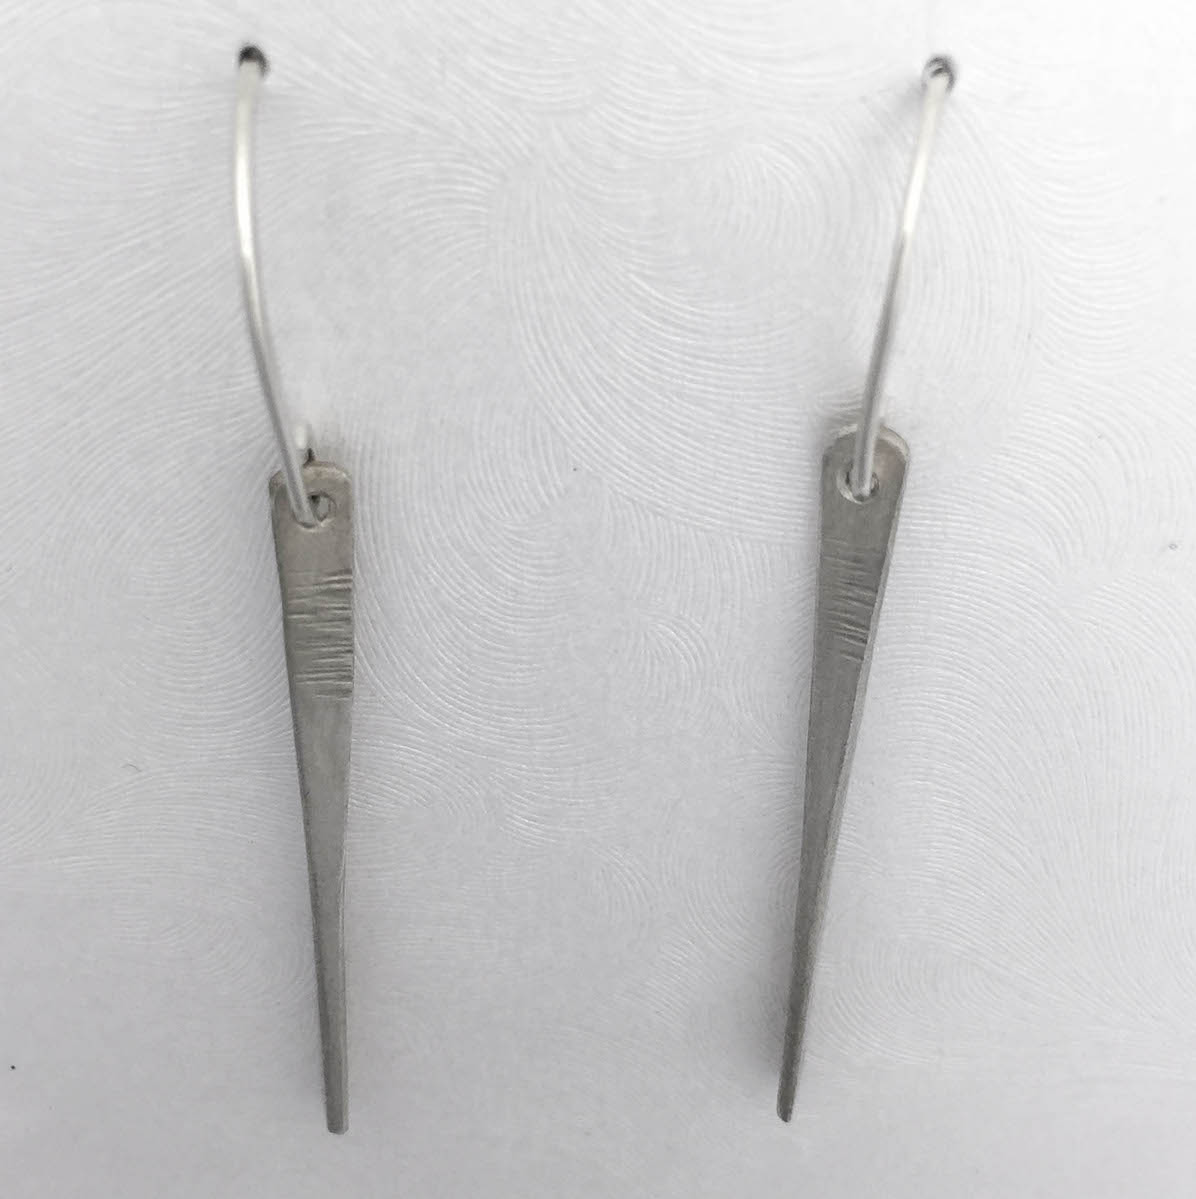 handmade earrings argentium silver 1 and 1/2 inch paddles forged with hammer